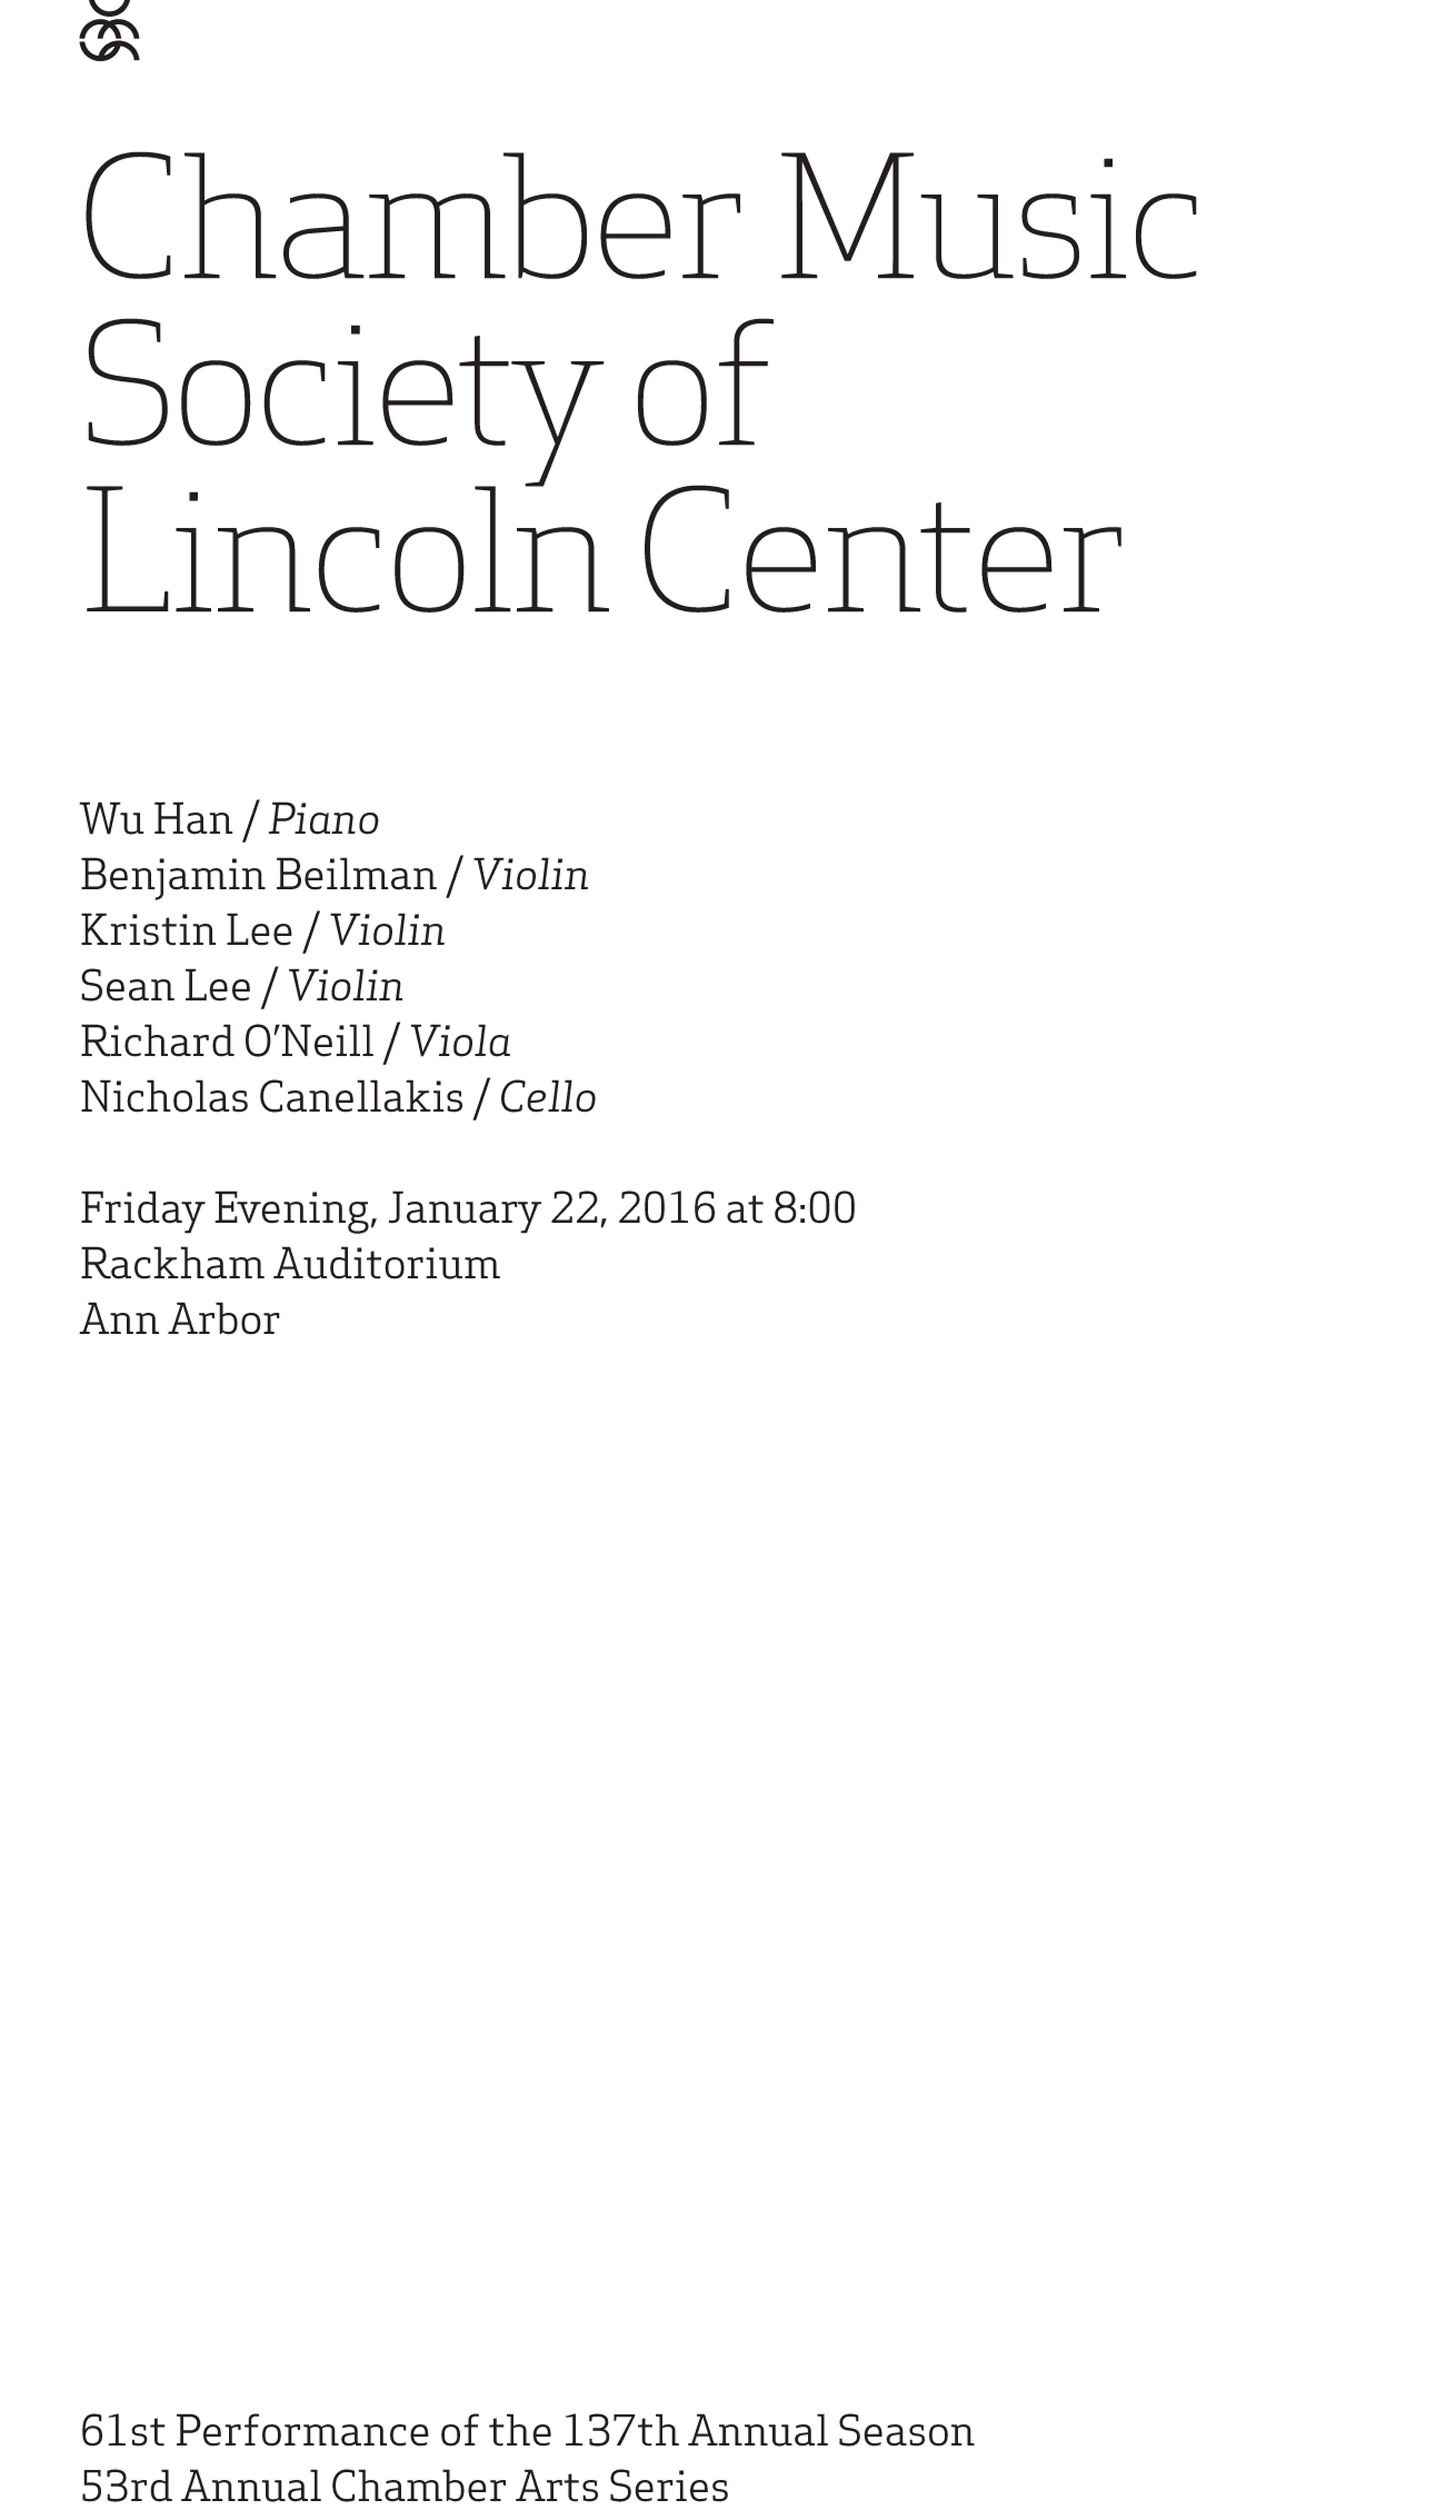 UMS Concert Program, January 22, 2016 - Chamber Music Society of Lincoln Center image